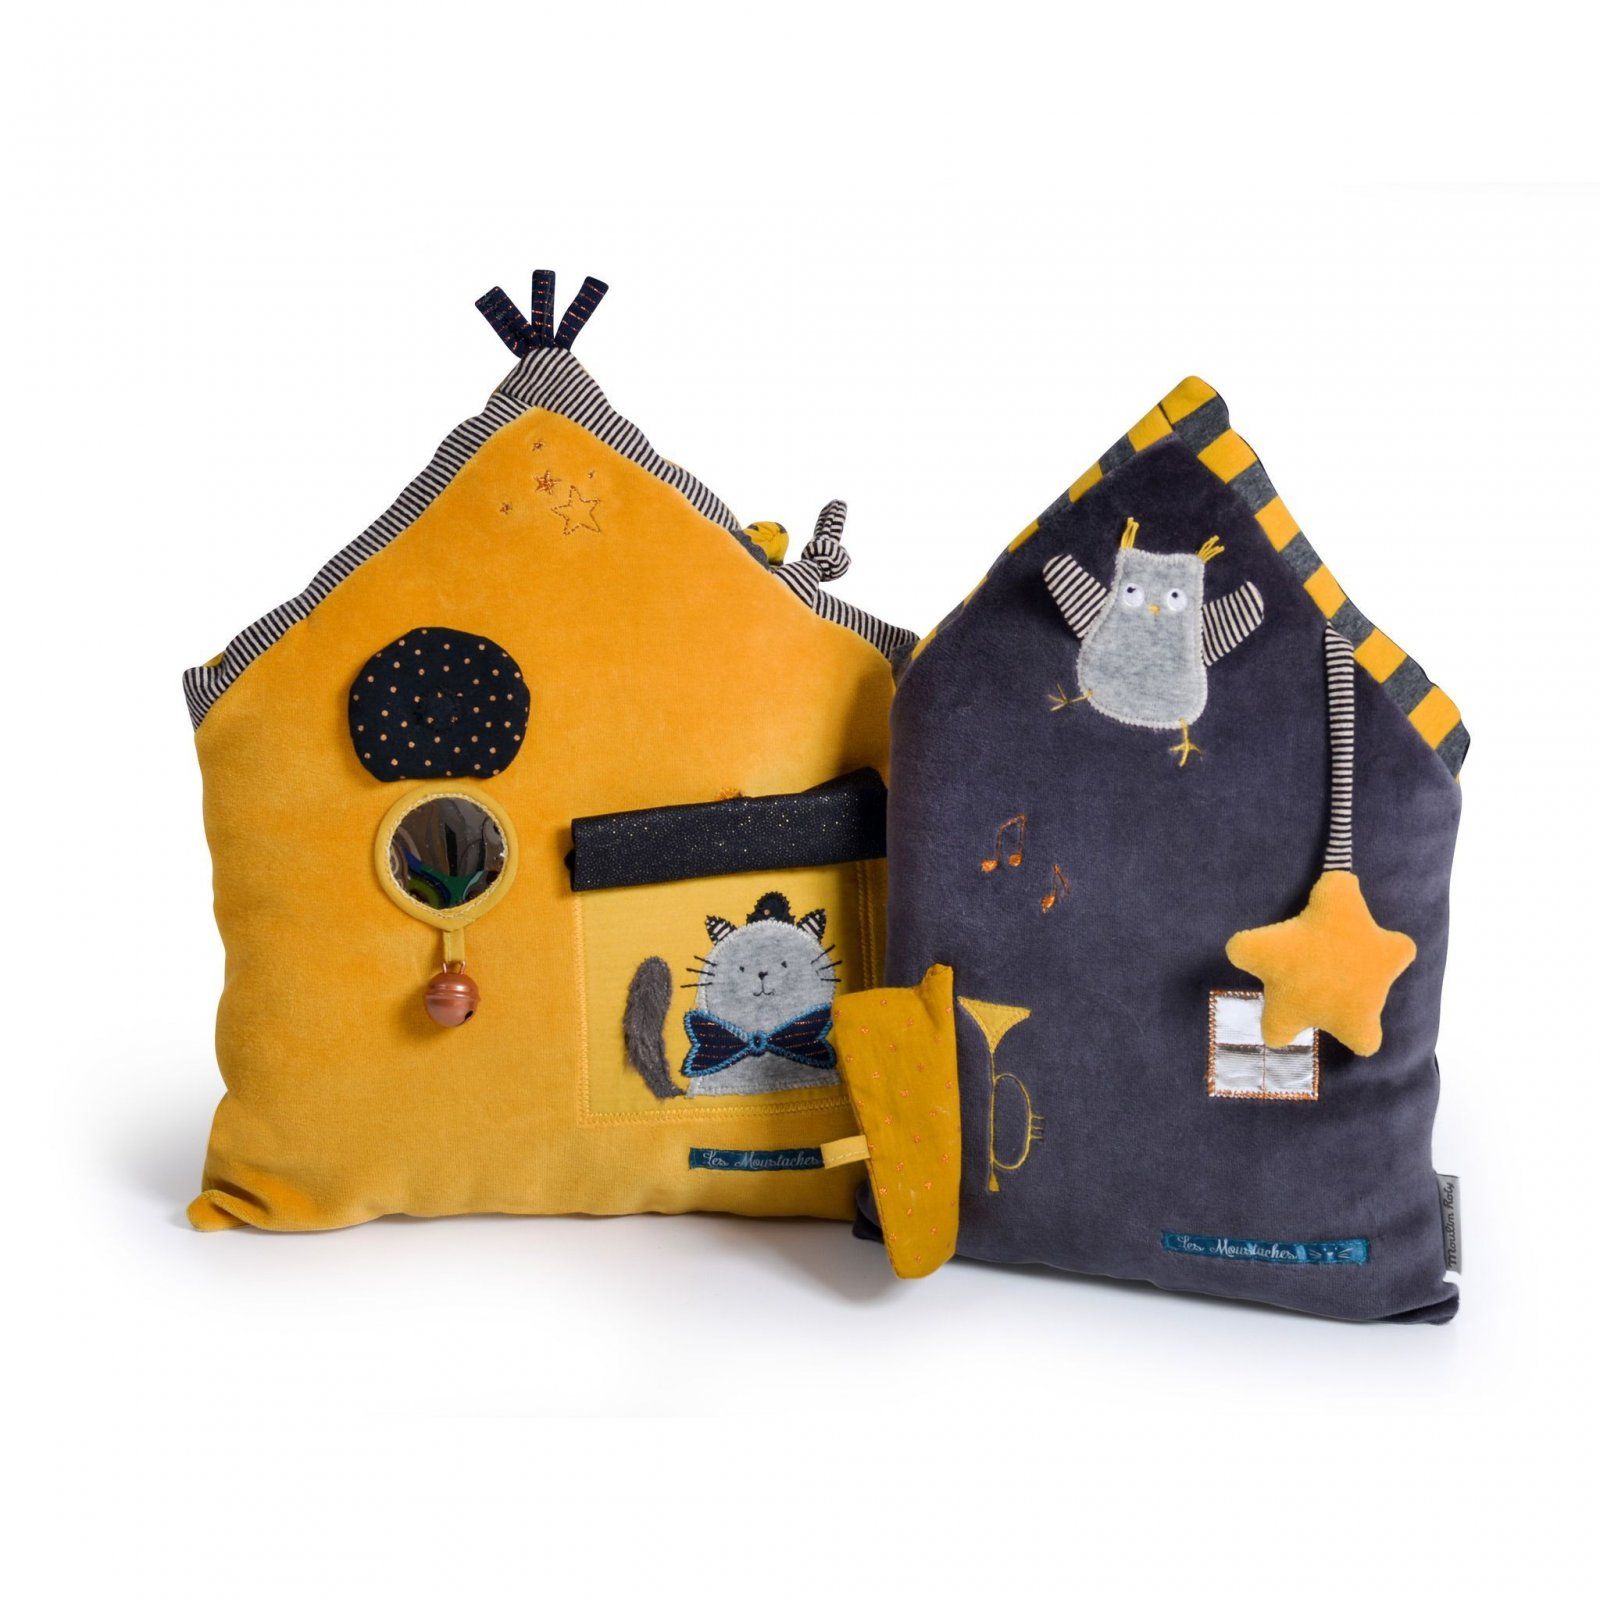 Yellow Activity House by Moulin Roty